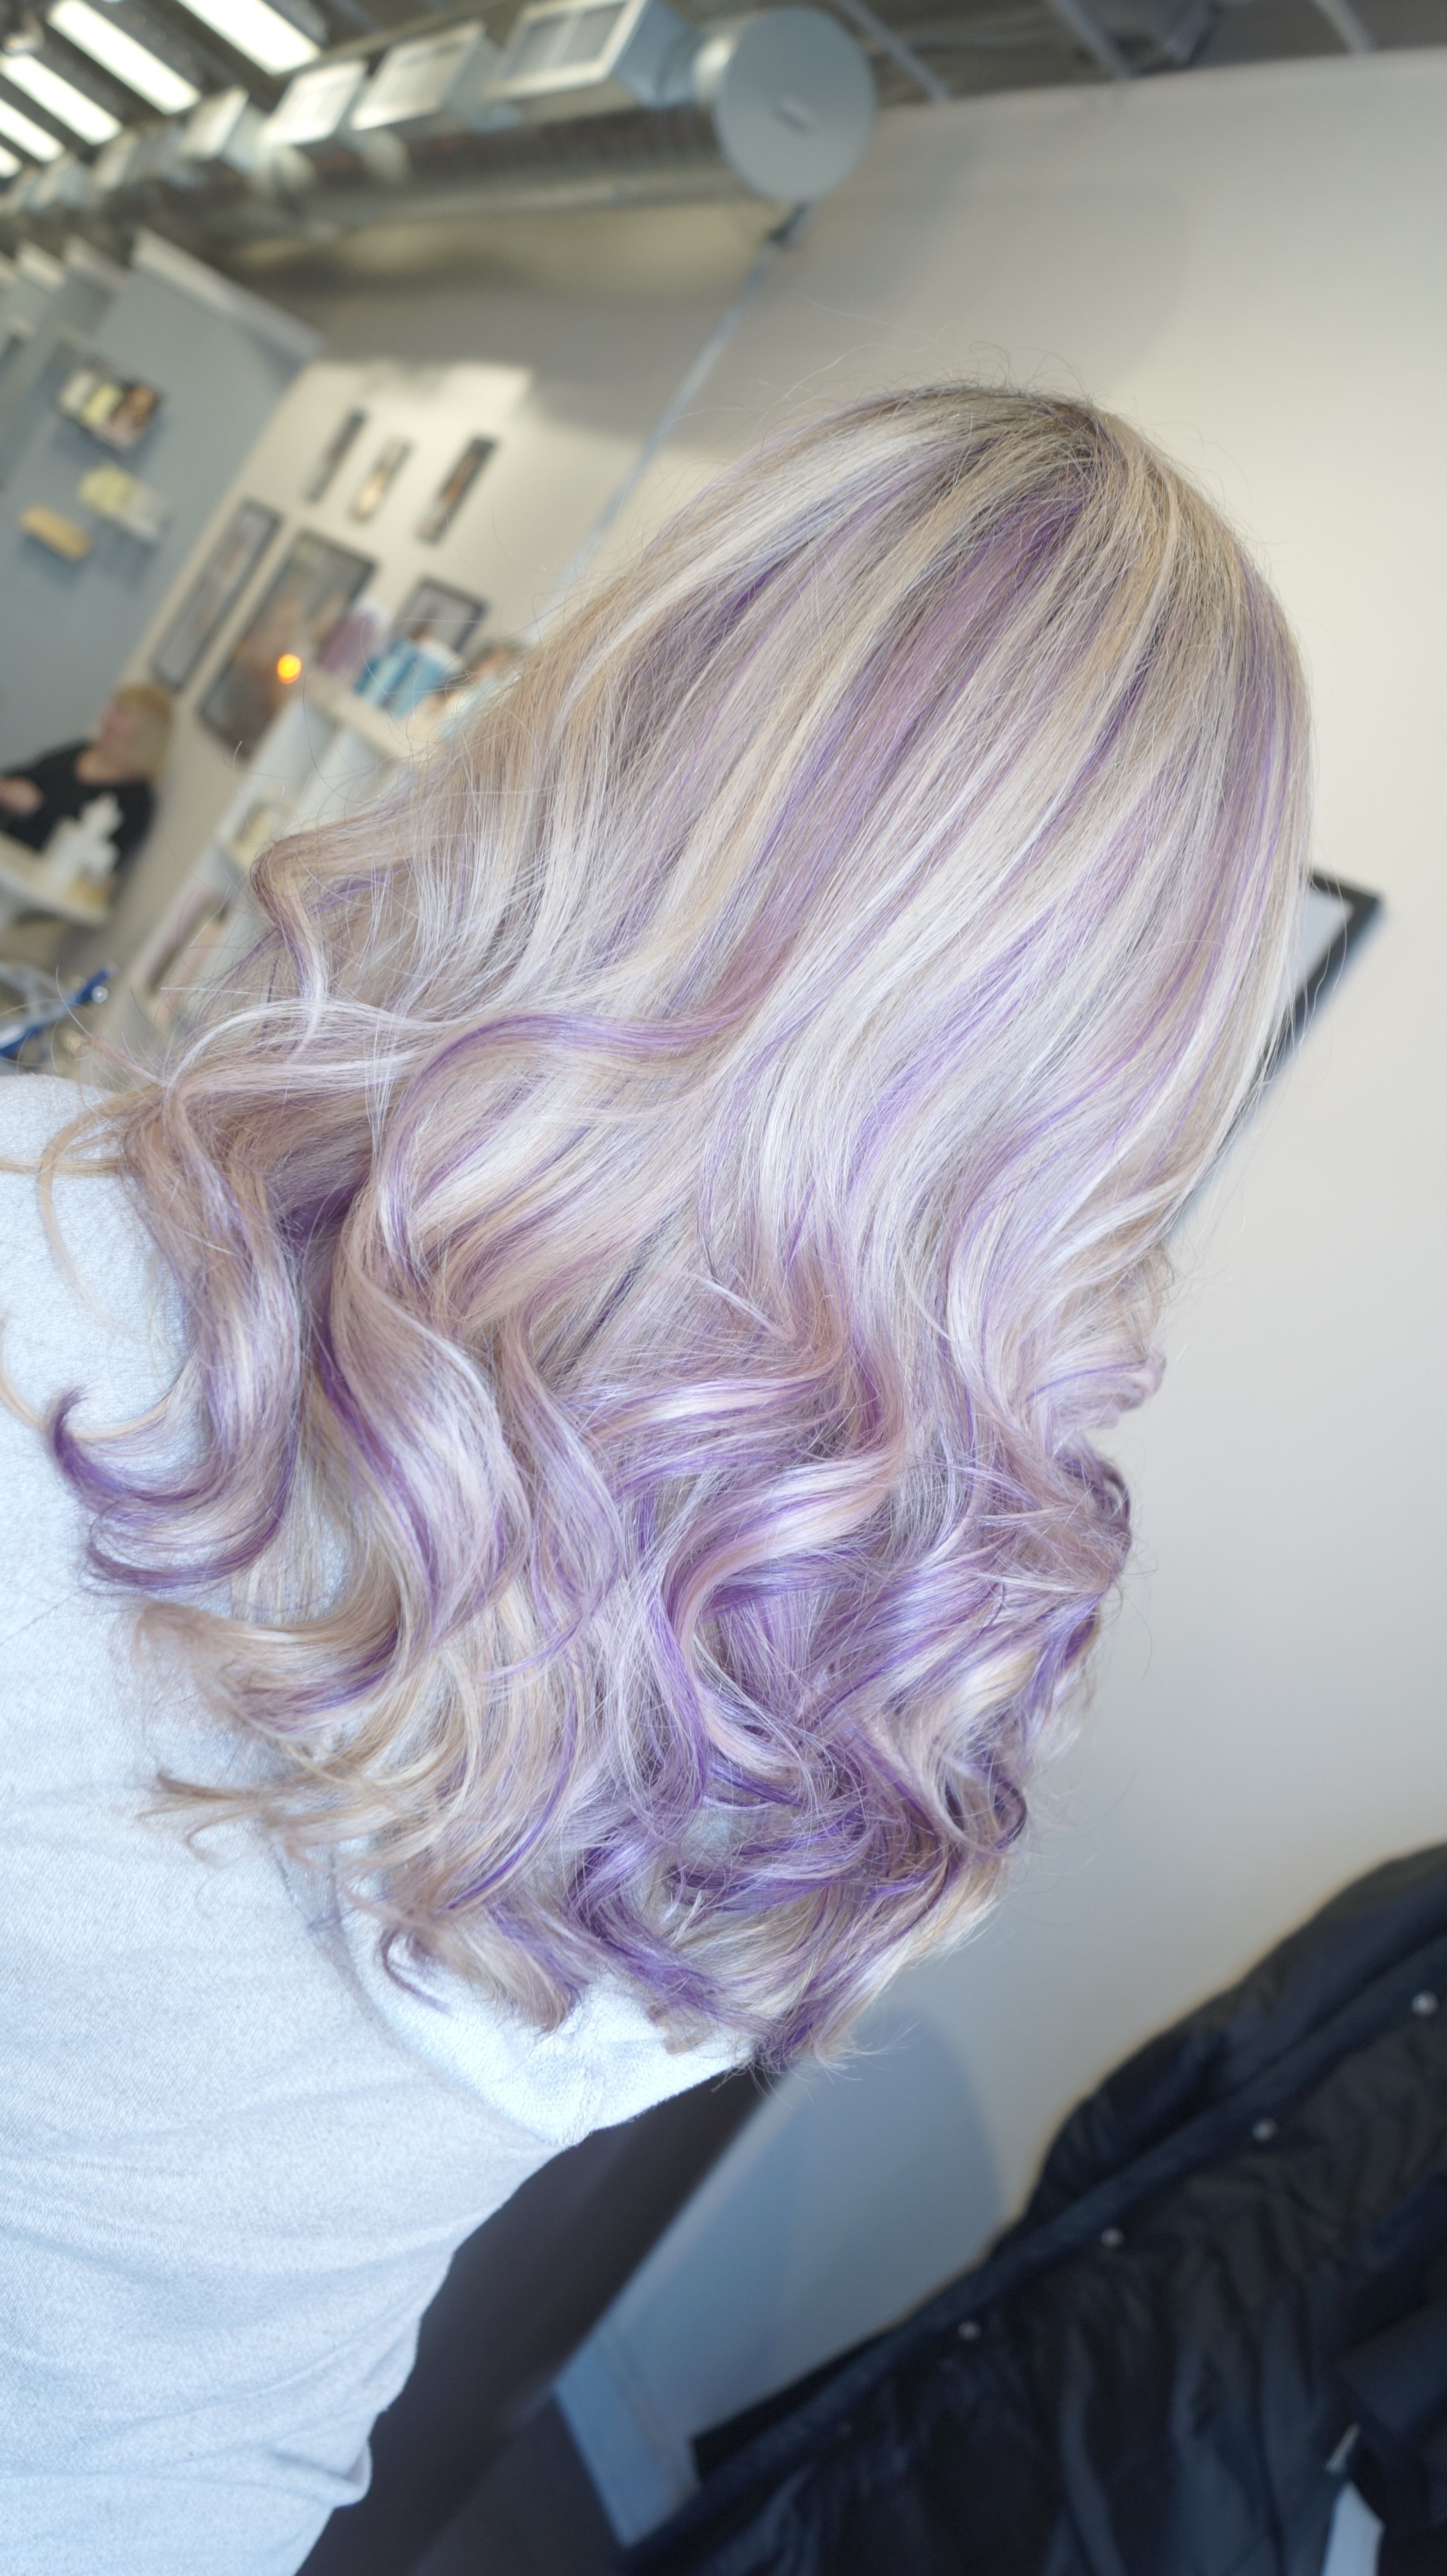 Lavender Highlights With Blonde Hair (View 11 of 20)